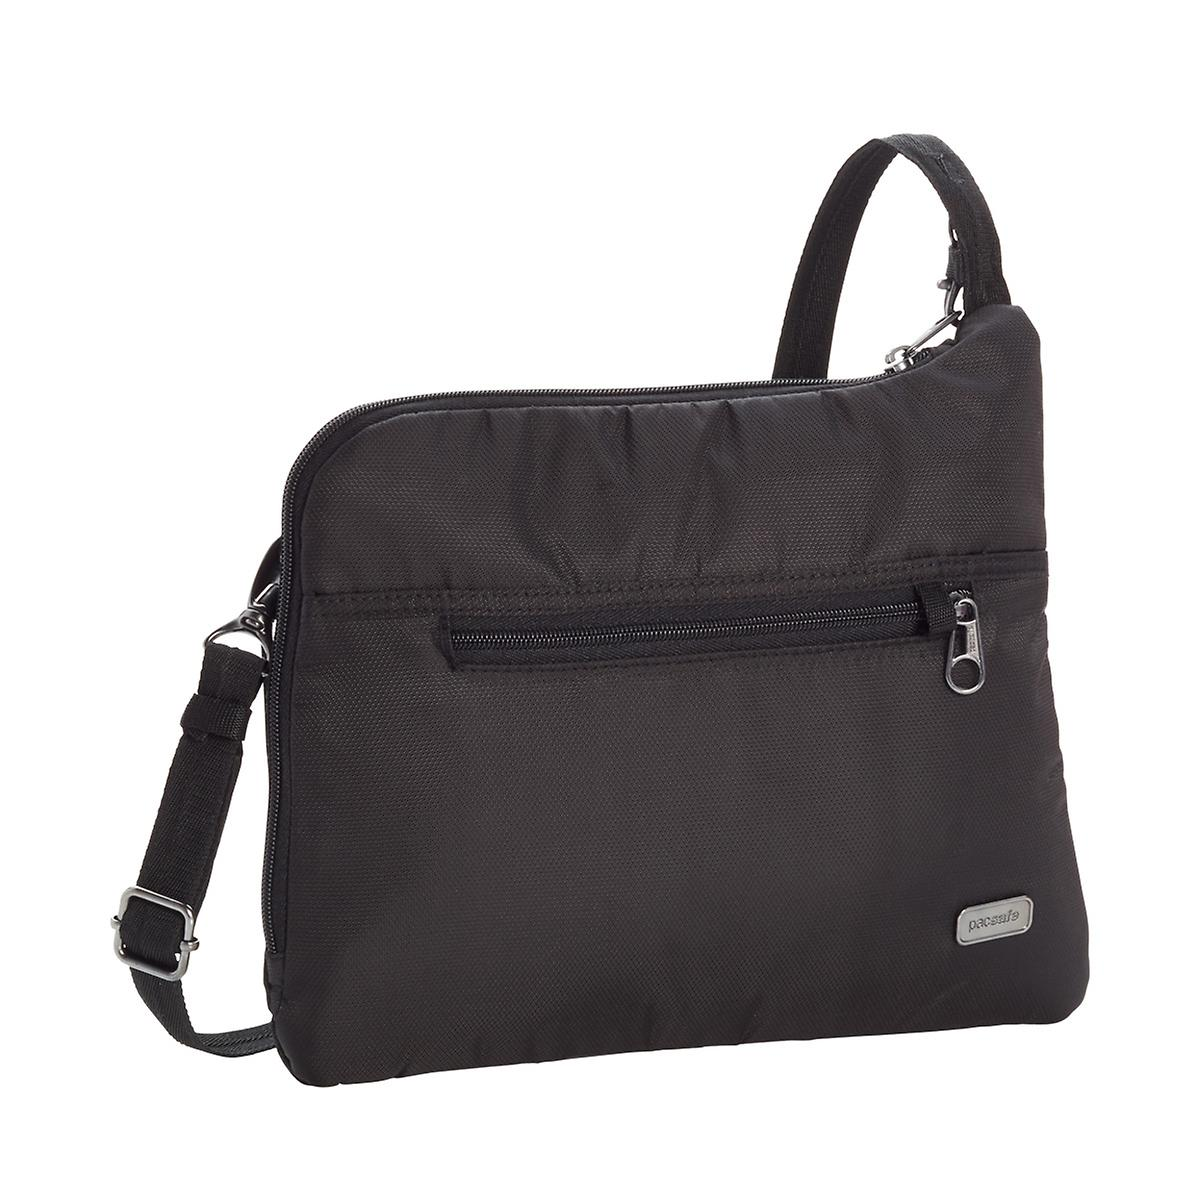 Outpac Black Daysafe Slim Crossbody